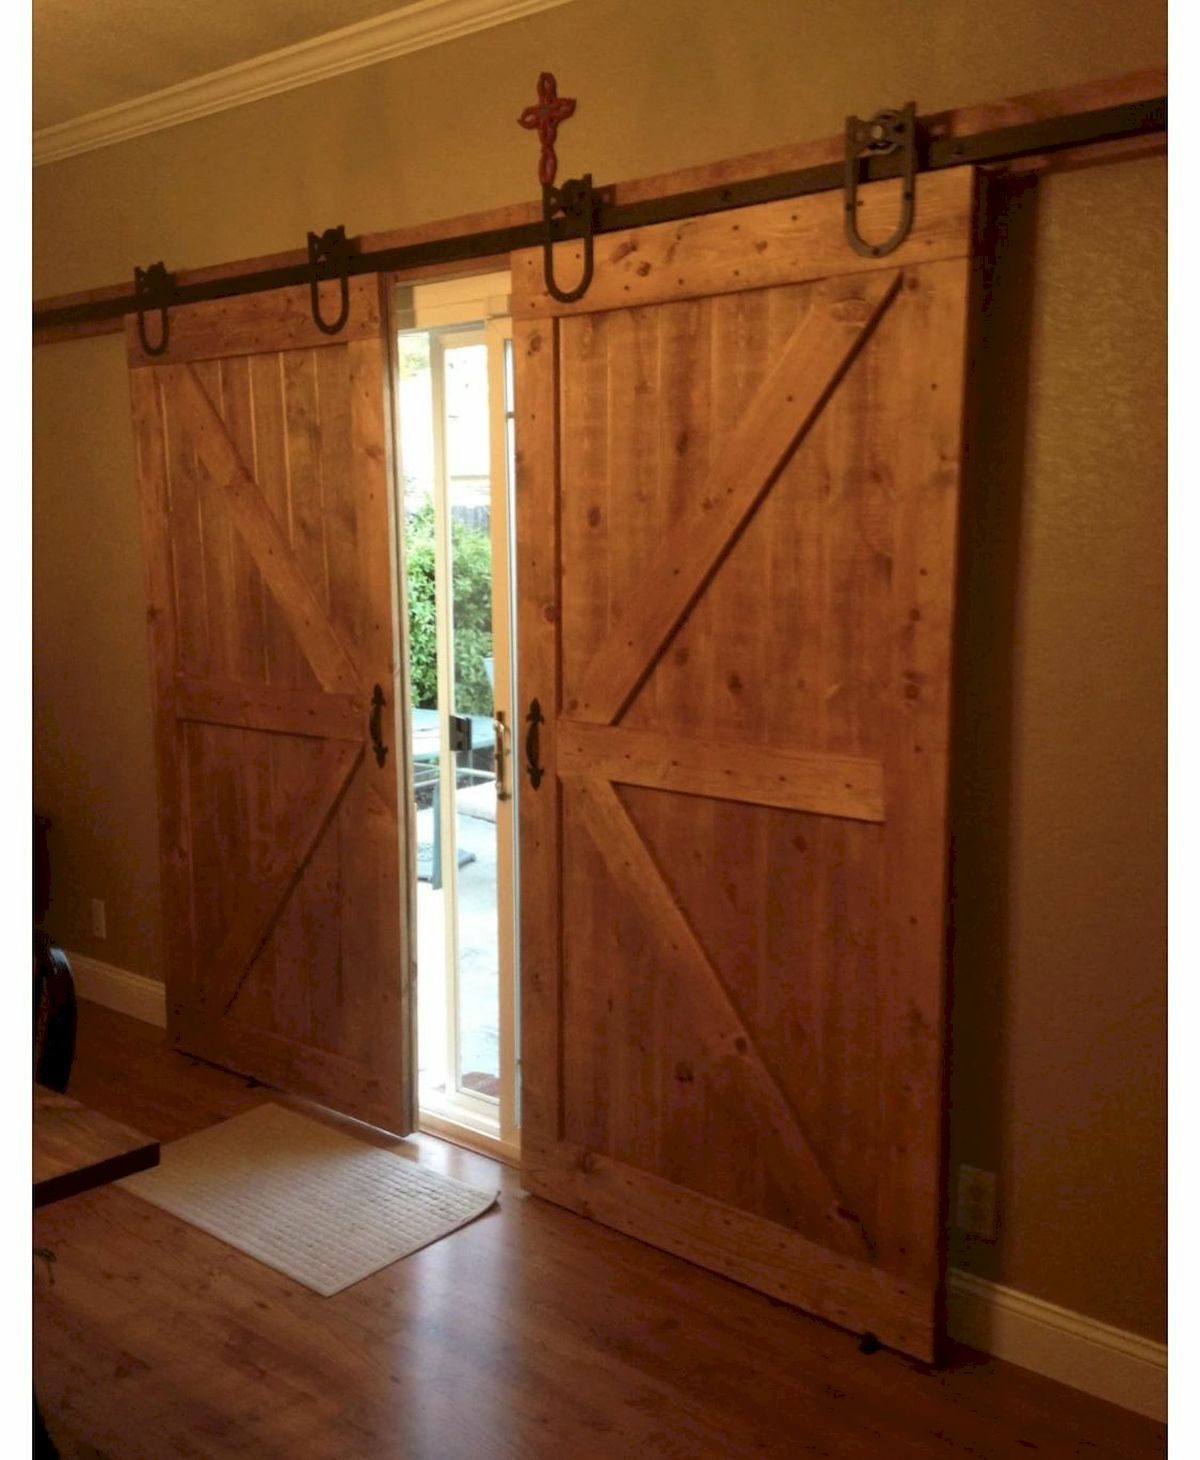 70 Rustic Home Decor Ideas for Doors and Windows (53)